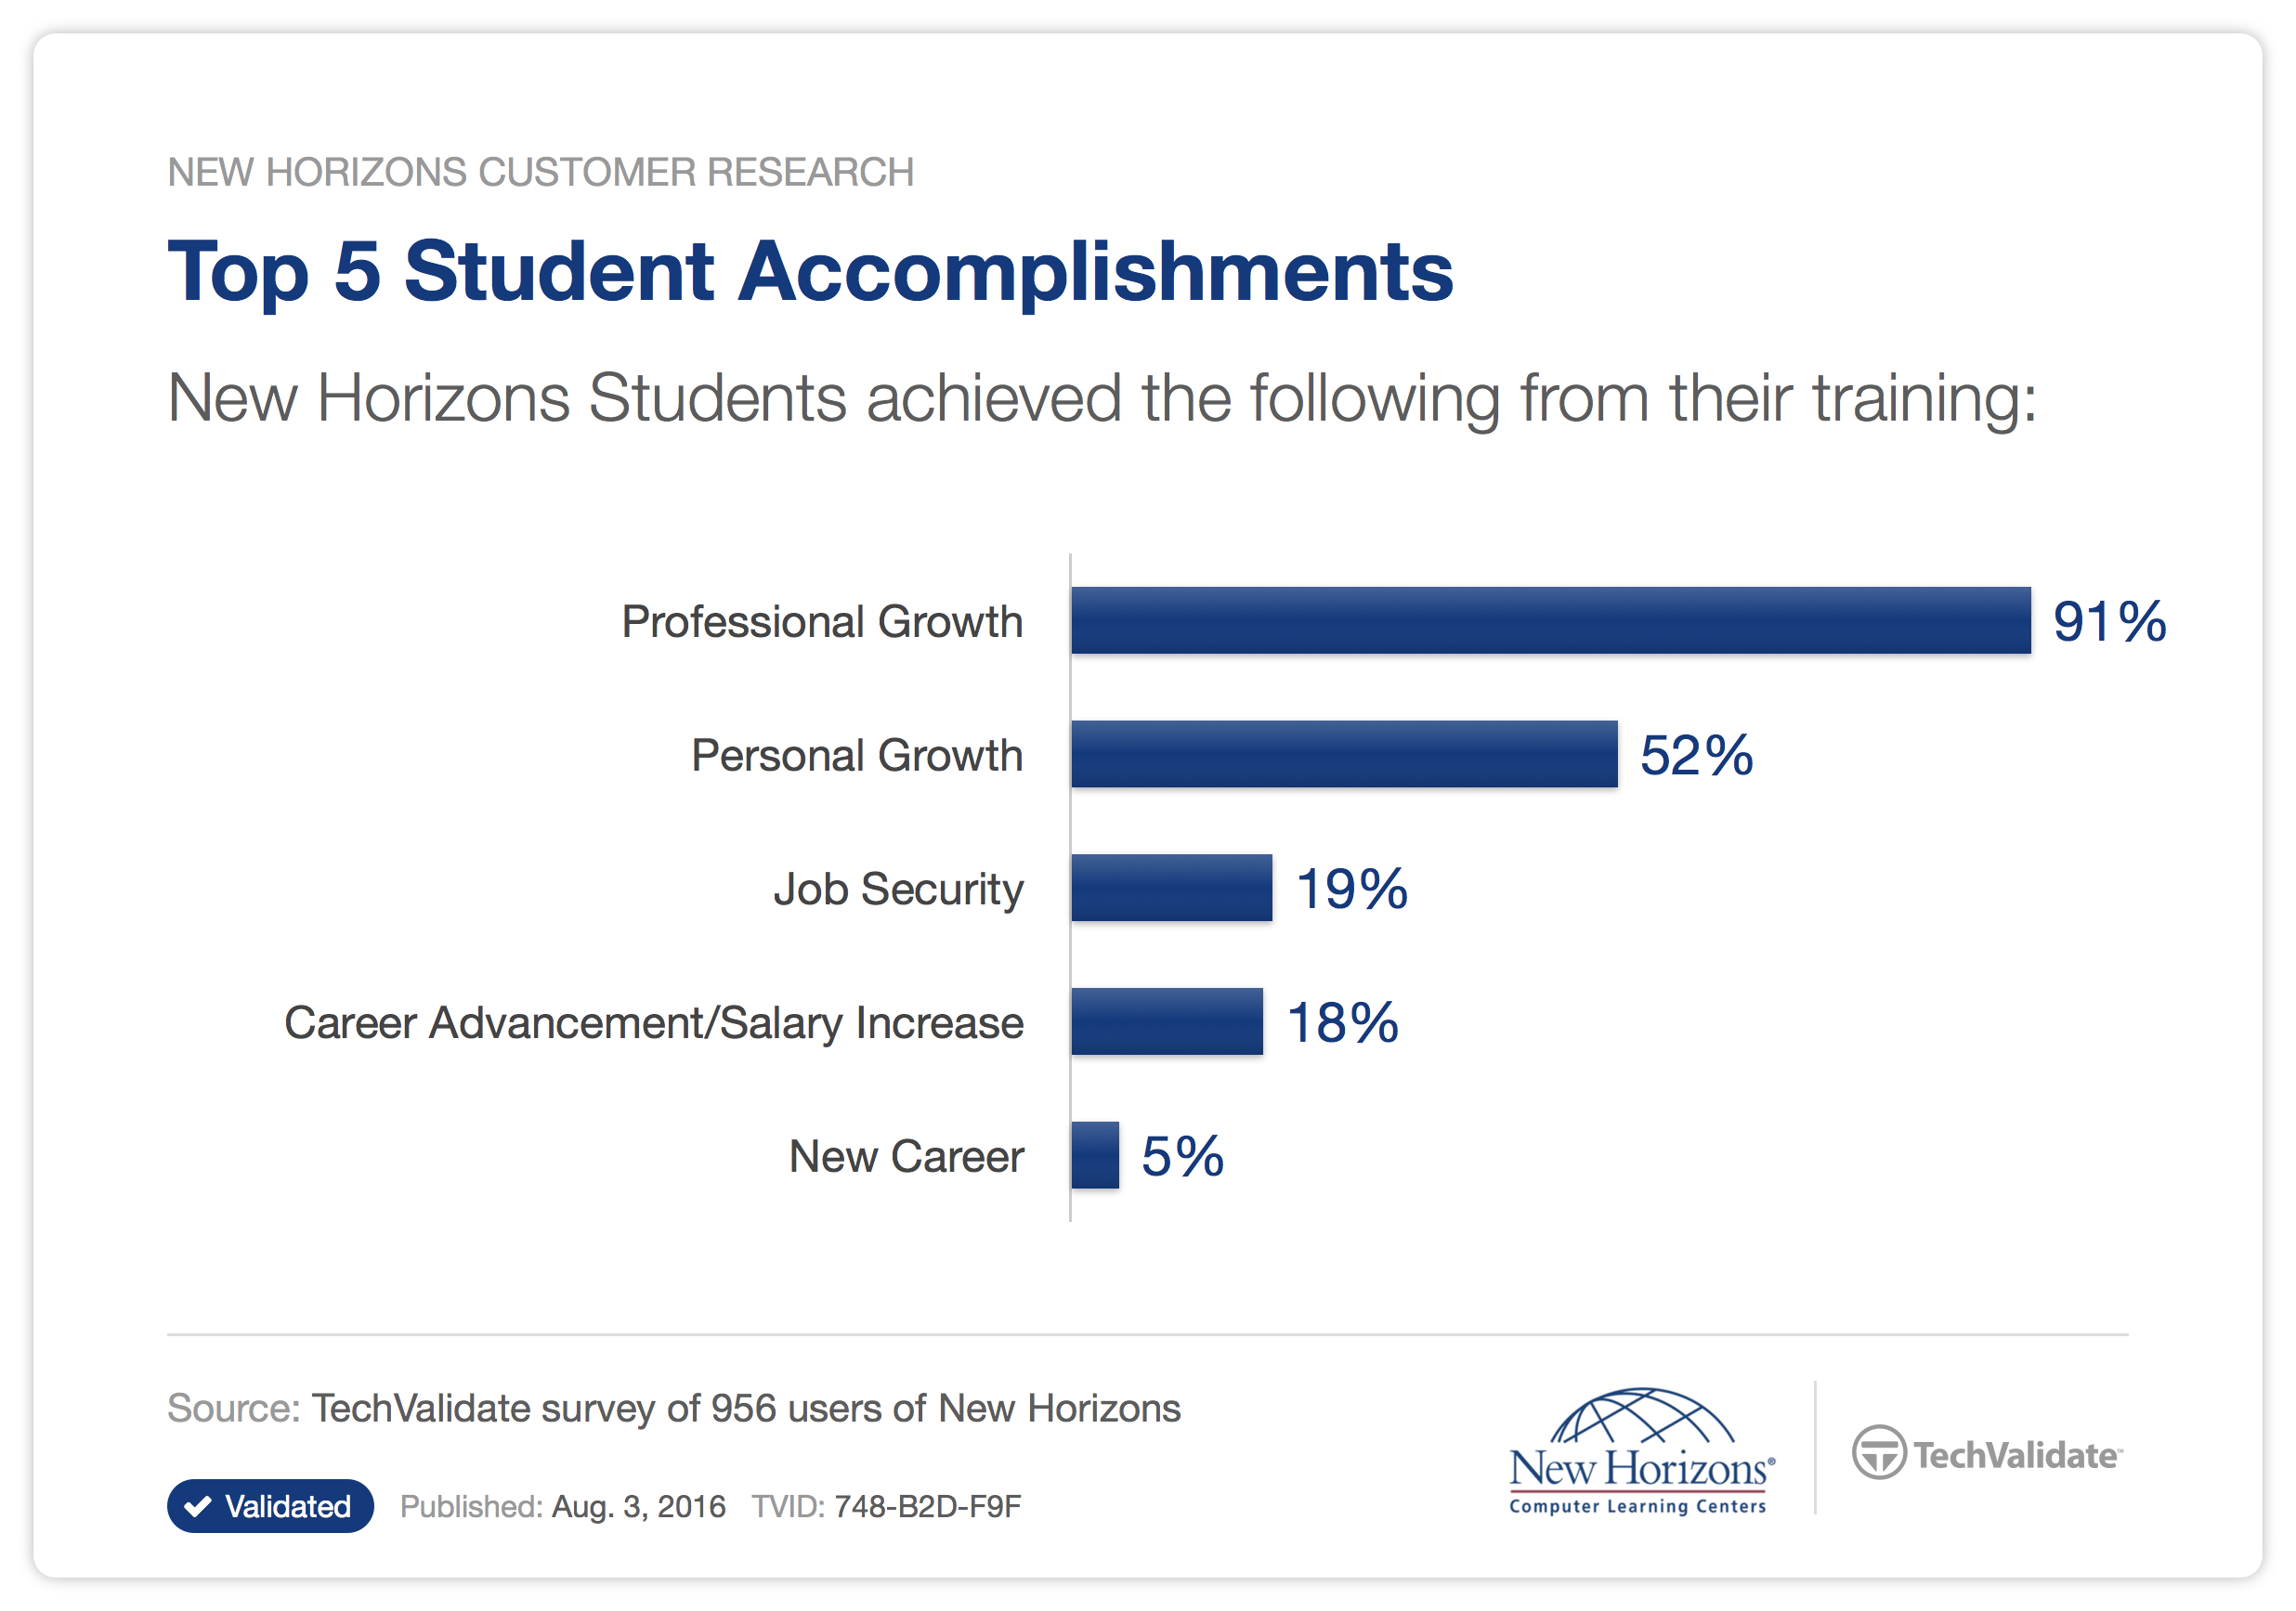 New Horizons - Top 5 Students Accomplishments